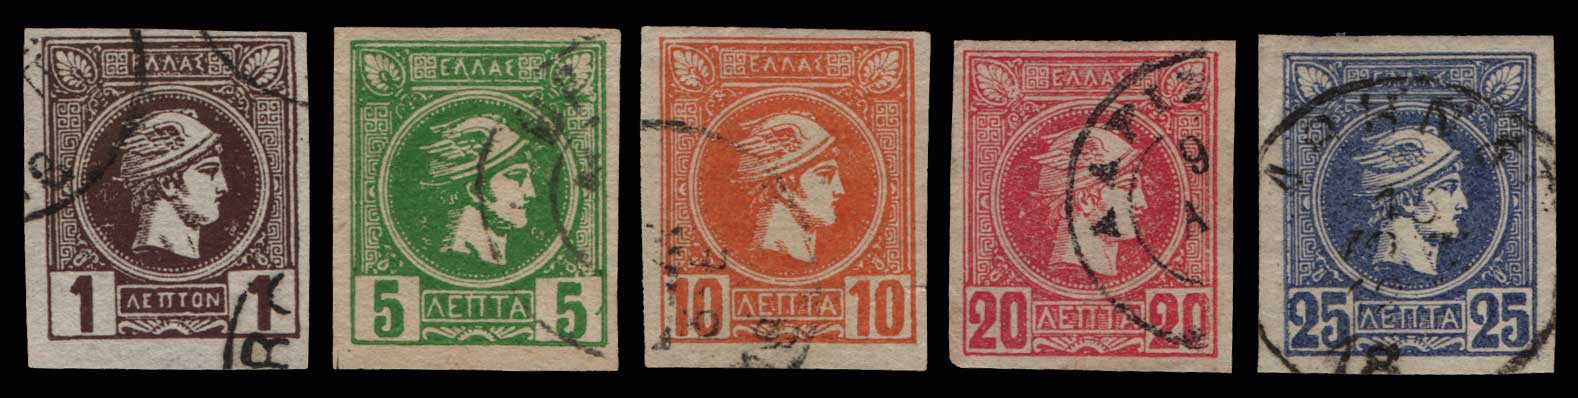 Lot 441 - -  SMALL HERMES HEAD ATHENSPRINTING - 1st PERIOD -  Athens Auctions Public Auction 84 General Stamp Sale